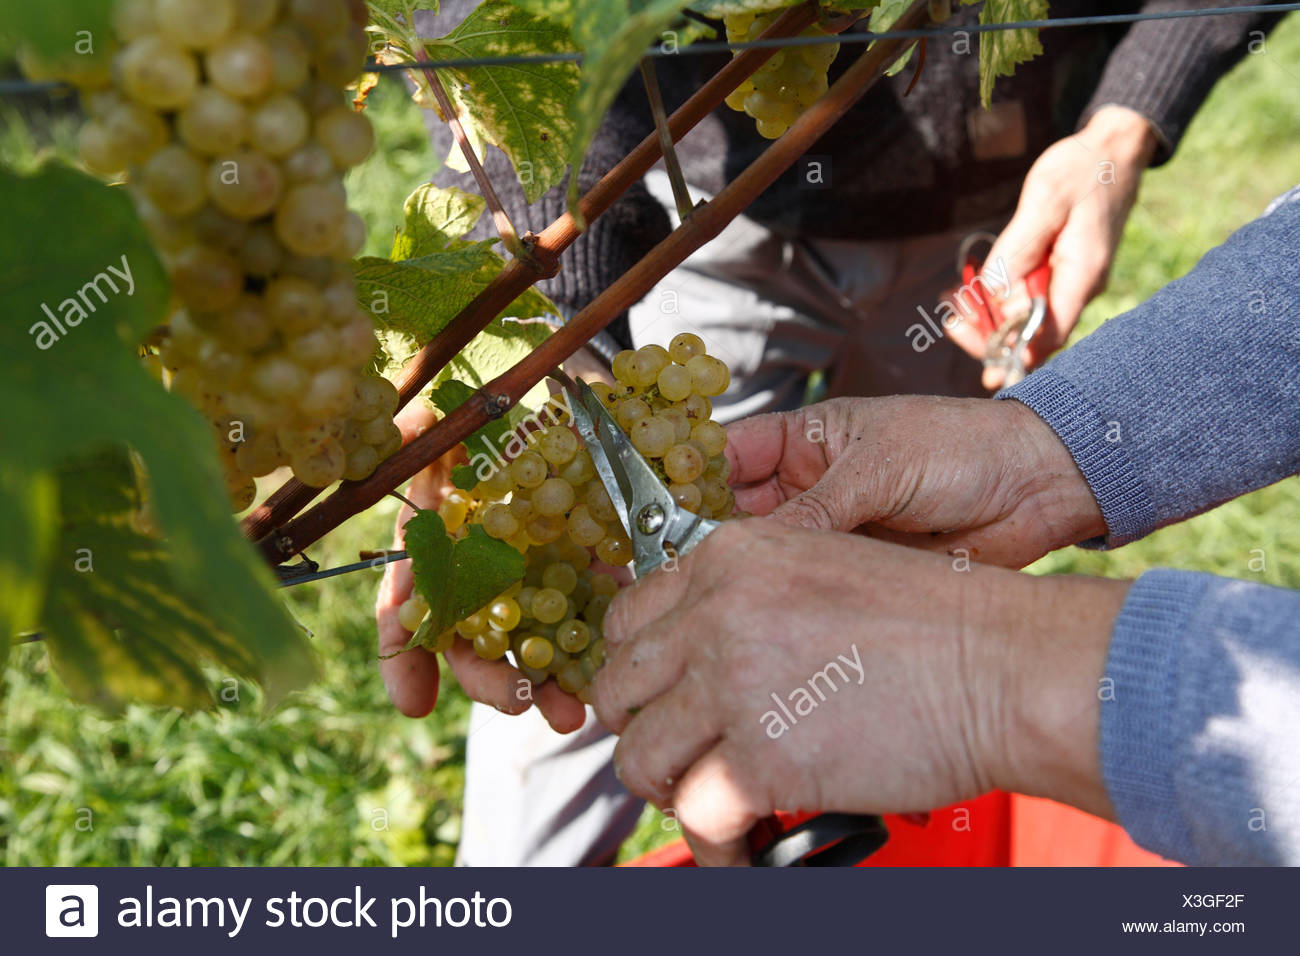 Hands harvesting grapes in Langegg, Southern Styria, Austria, Europe - Stock Image